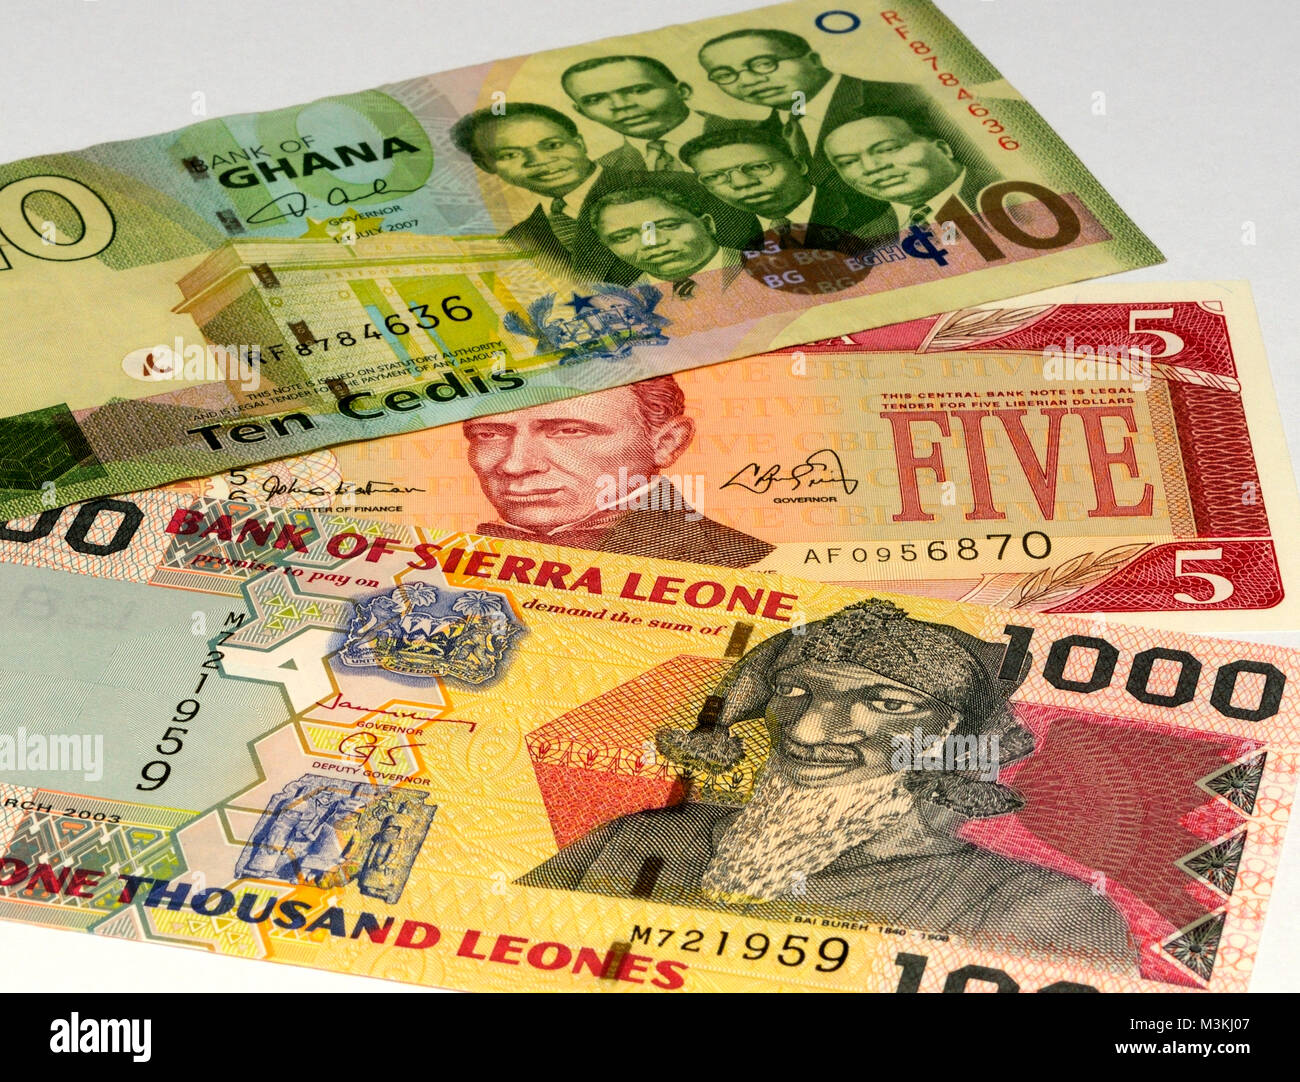 West Africa Currency Bank Notes - Stock Image